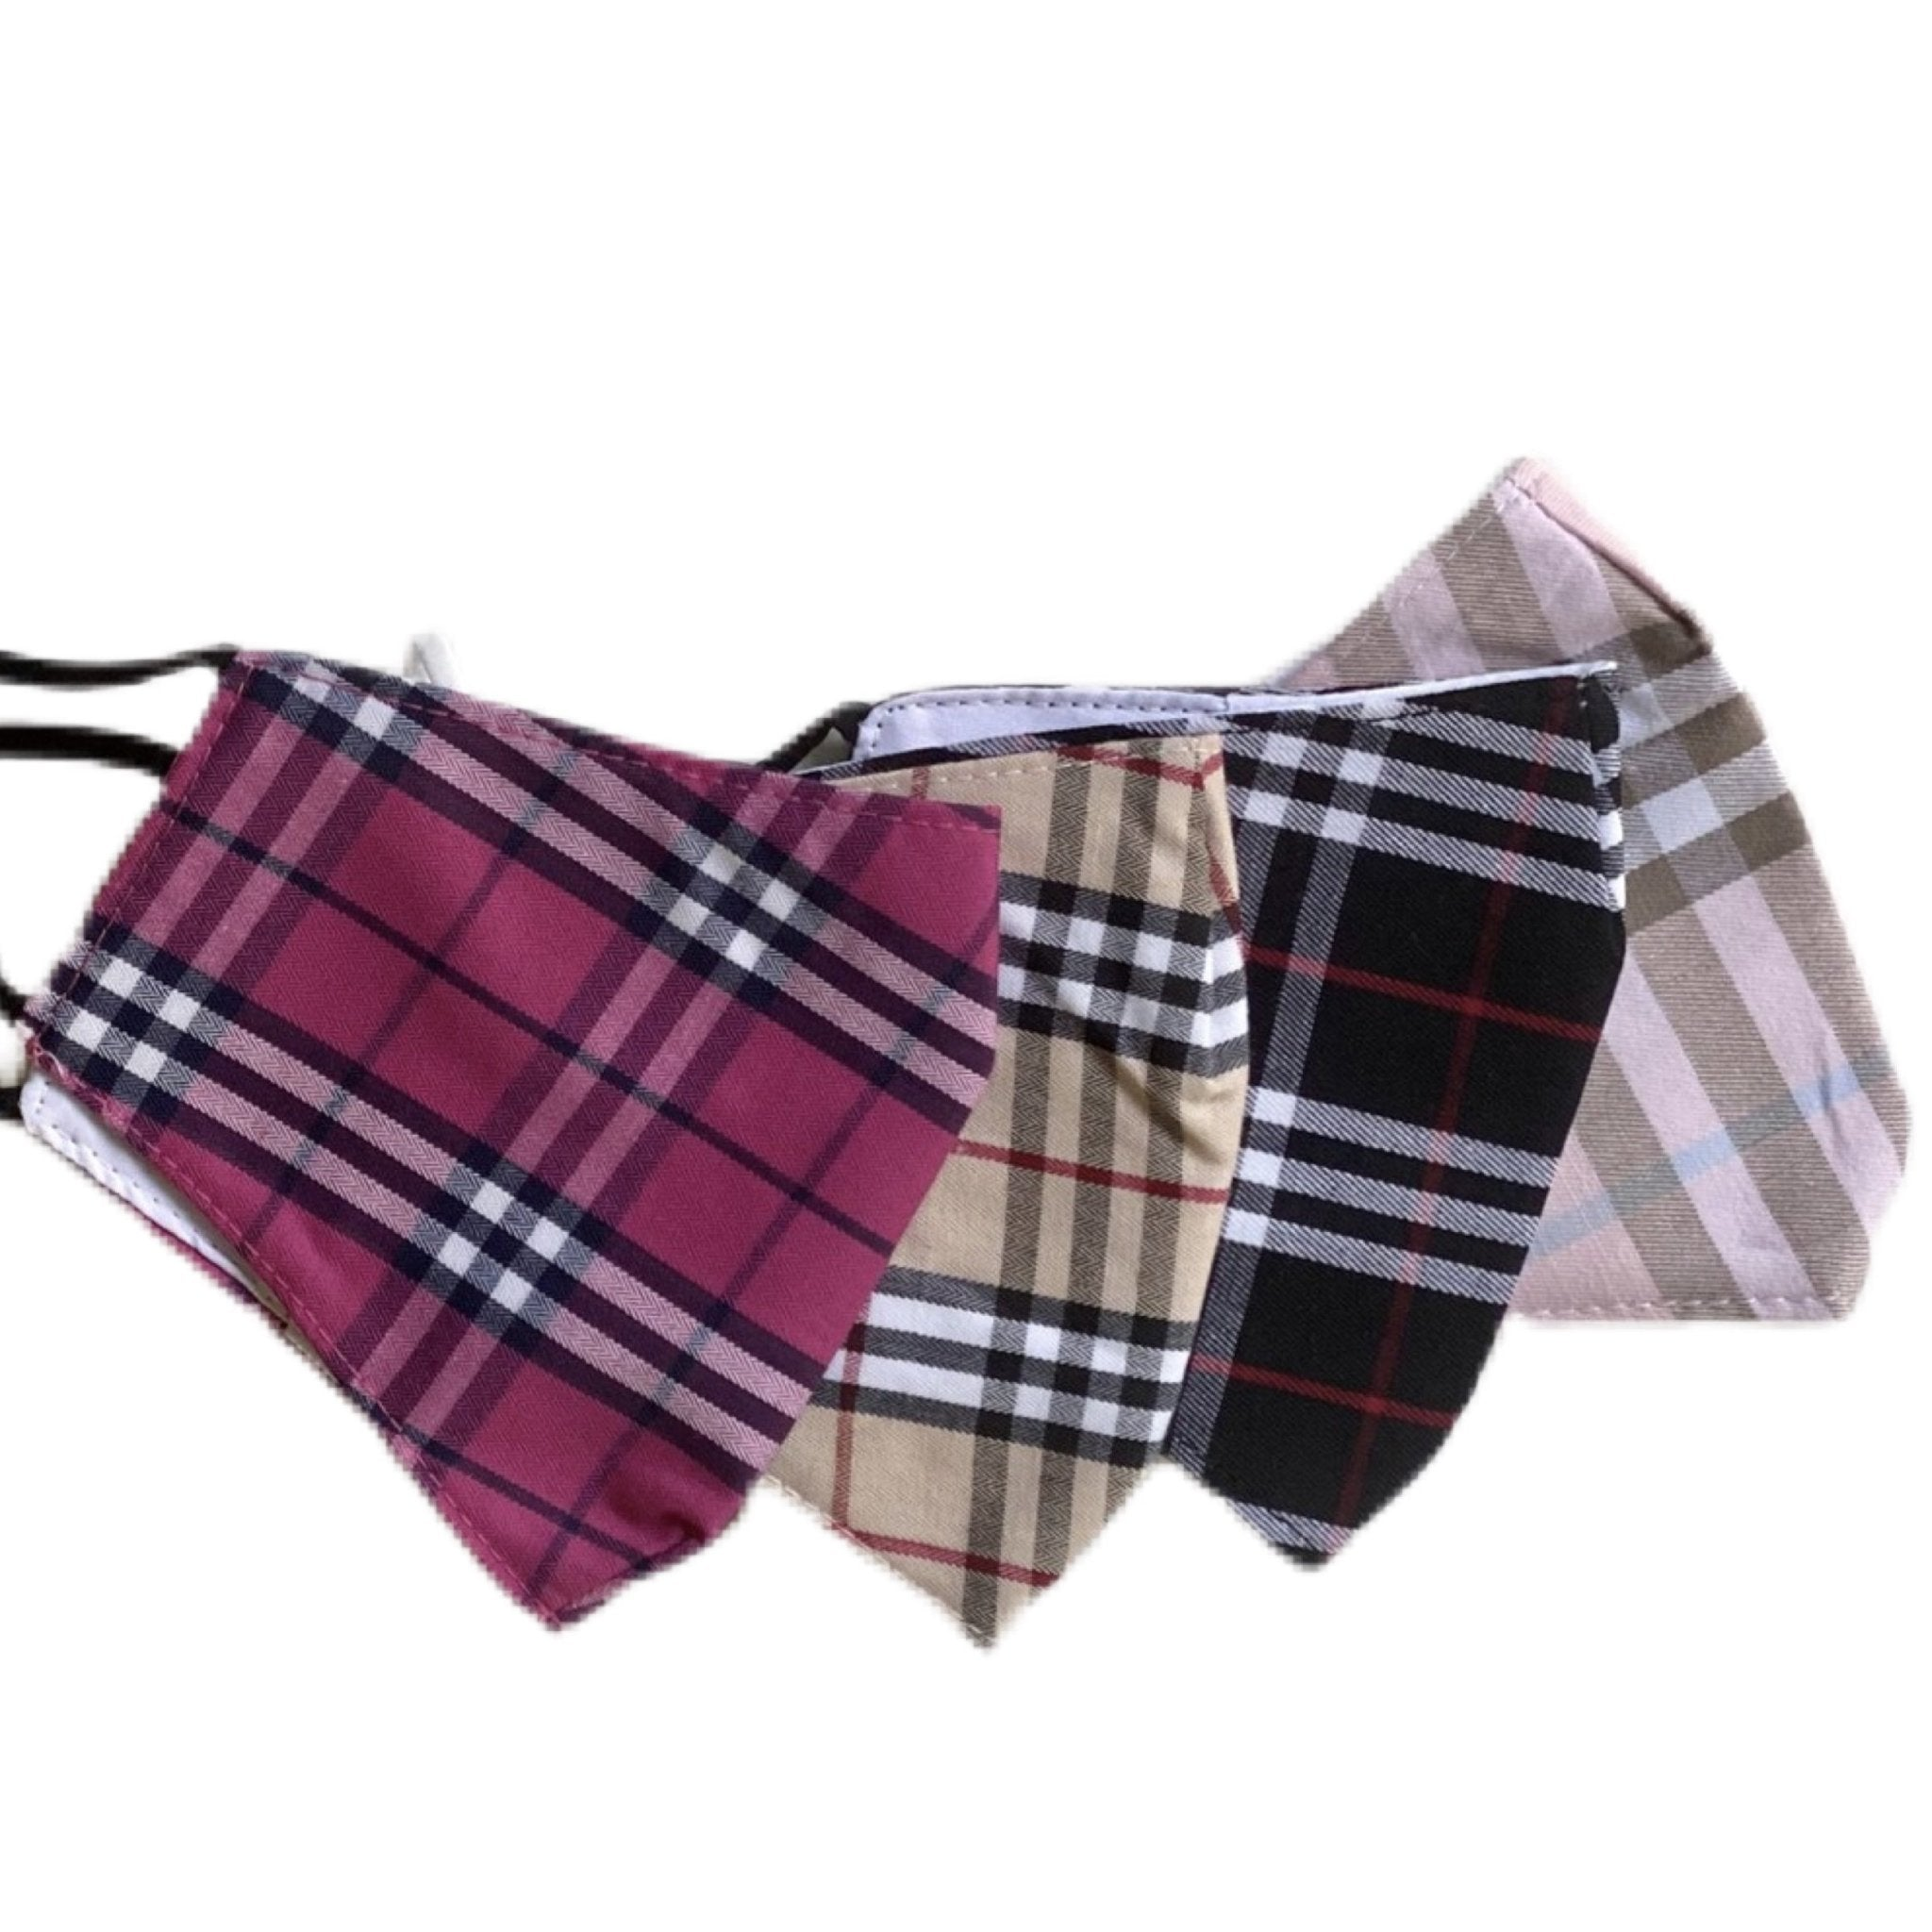 Plaid Mask - Scroll to view the 4 colors - Inspired Evanston